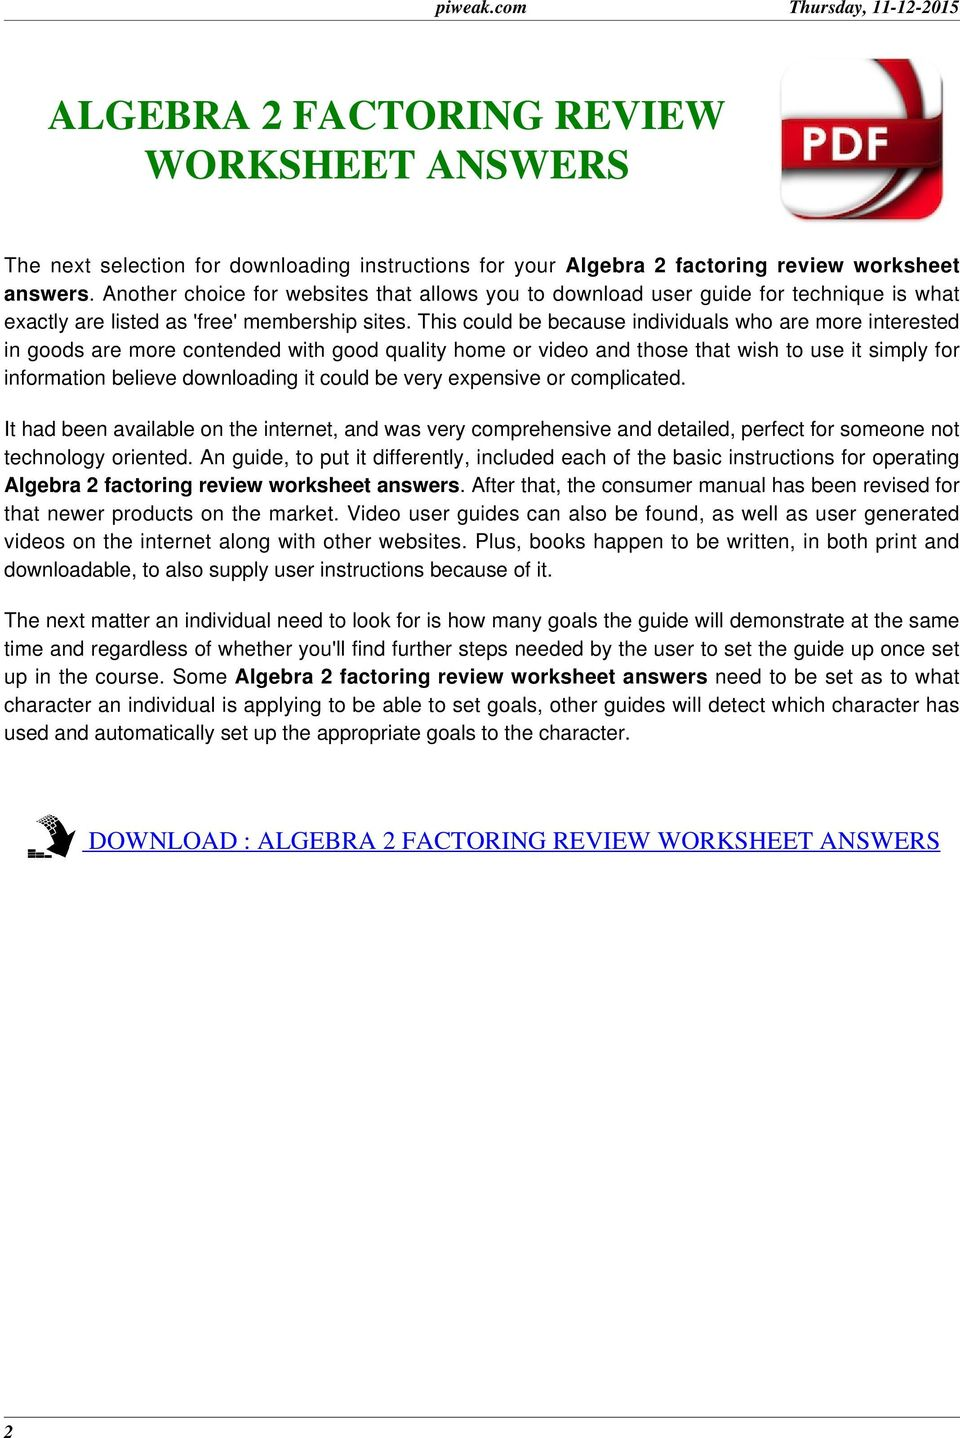 algebra 2 factoring review worksheet answers pdf. Black Bedroom Furniture Sets. Home Design Ideas